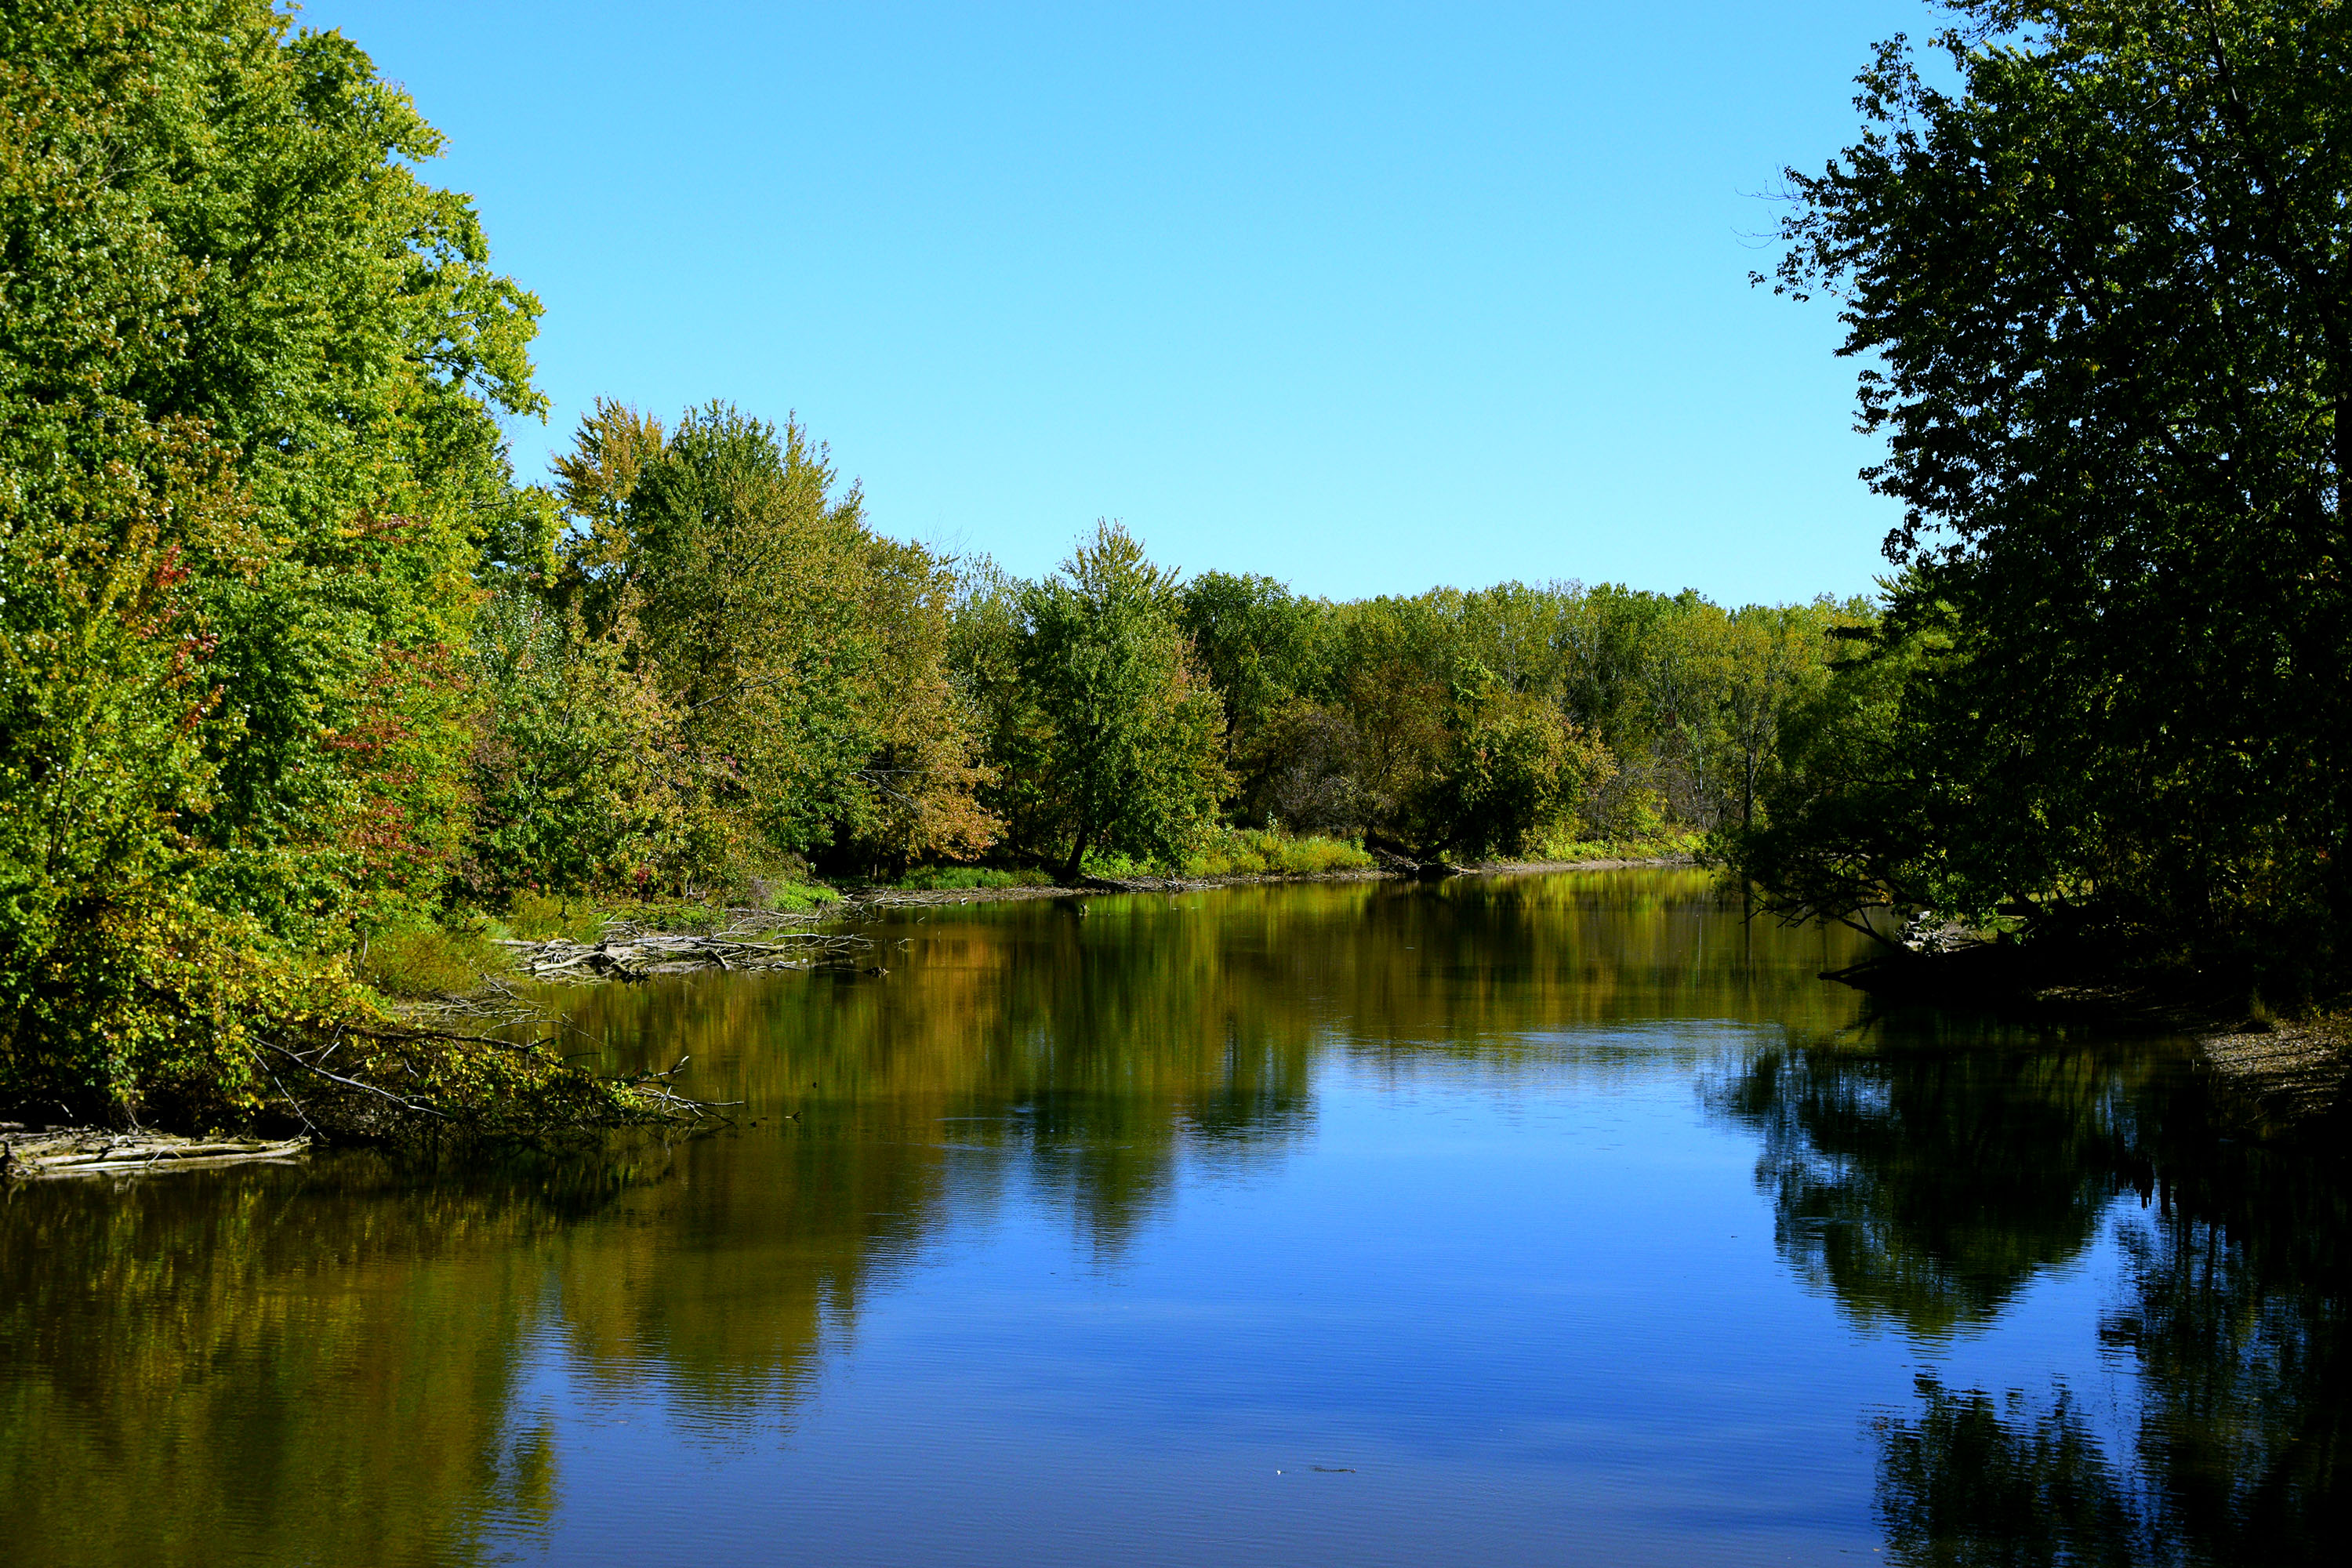 Taken from the old rail bridge on the rail train over the Shiawassee River in St. Charles